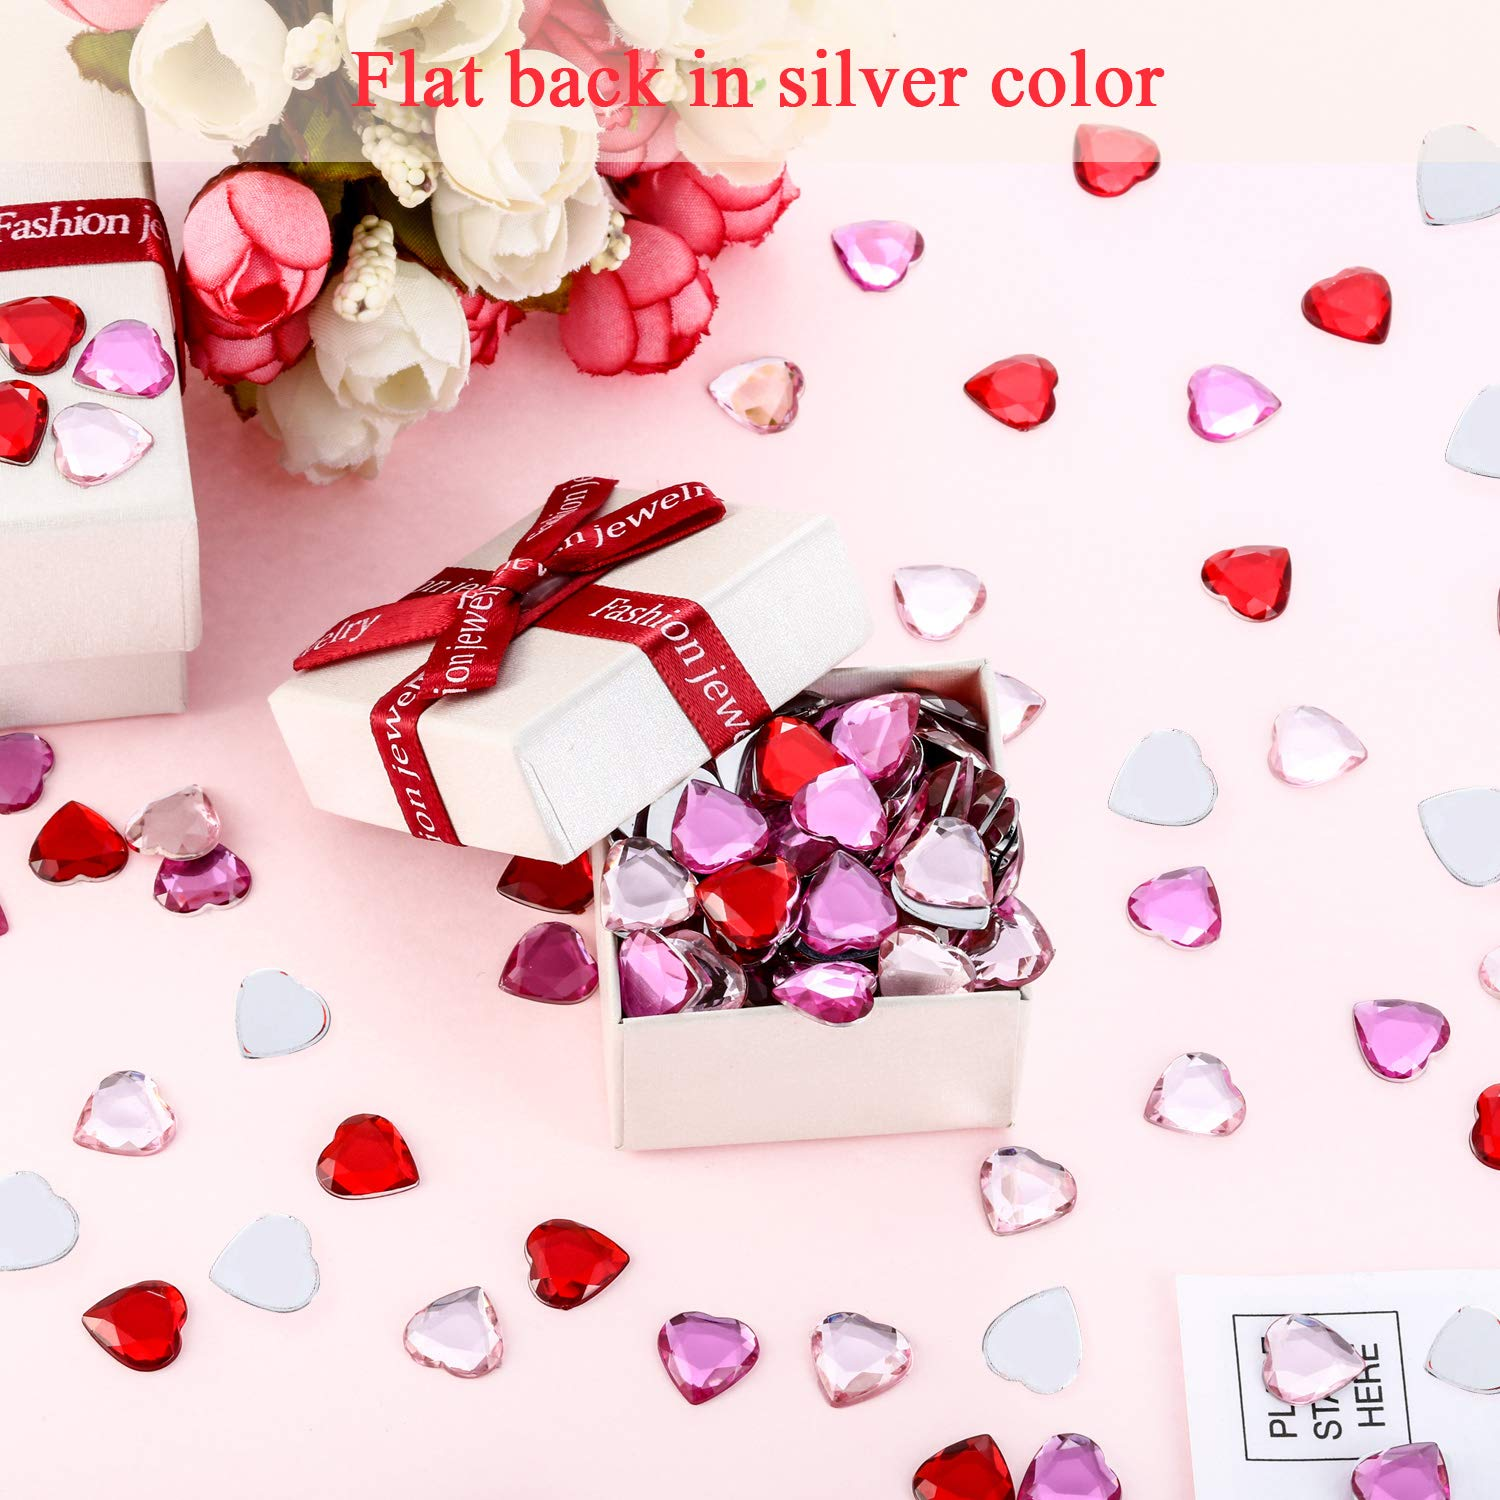 400 Pieces Flat Back Heart Rhinestones 0.5 Inch Wedding Heart Table Scatter Decoration Red//Pink Acrylic Heart for Valentines Day